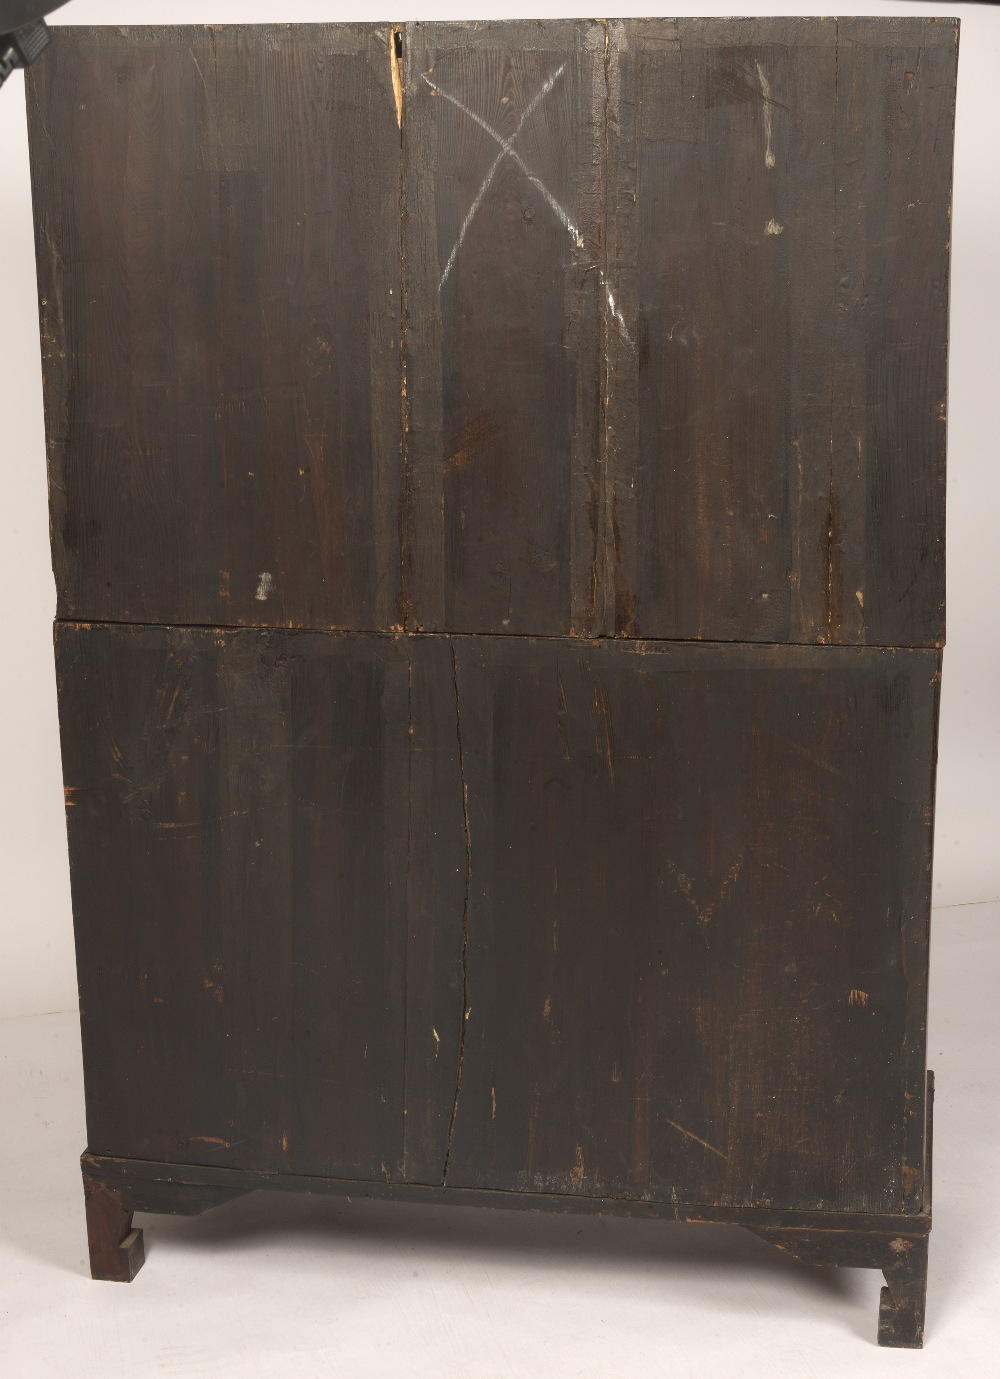 Two unit stacked chest (ich'ung nong) Korean, 19th Century with burl wood panel fronts and brass - Image 5 of 5